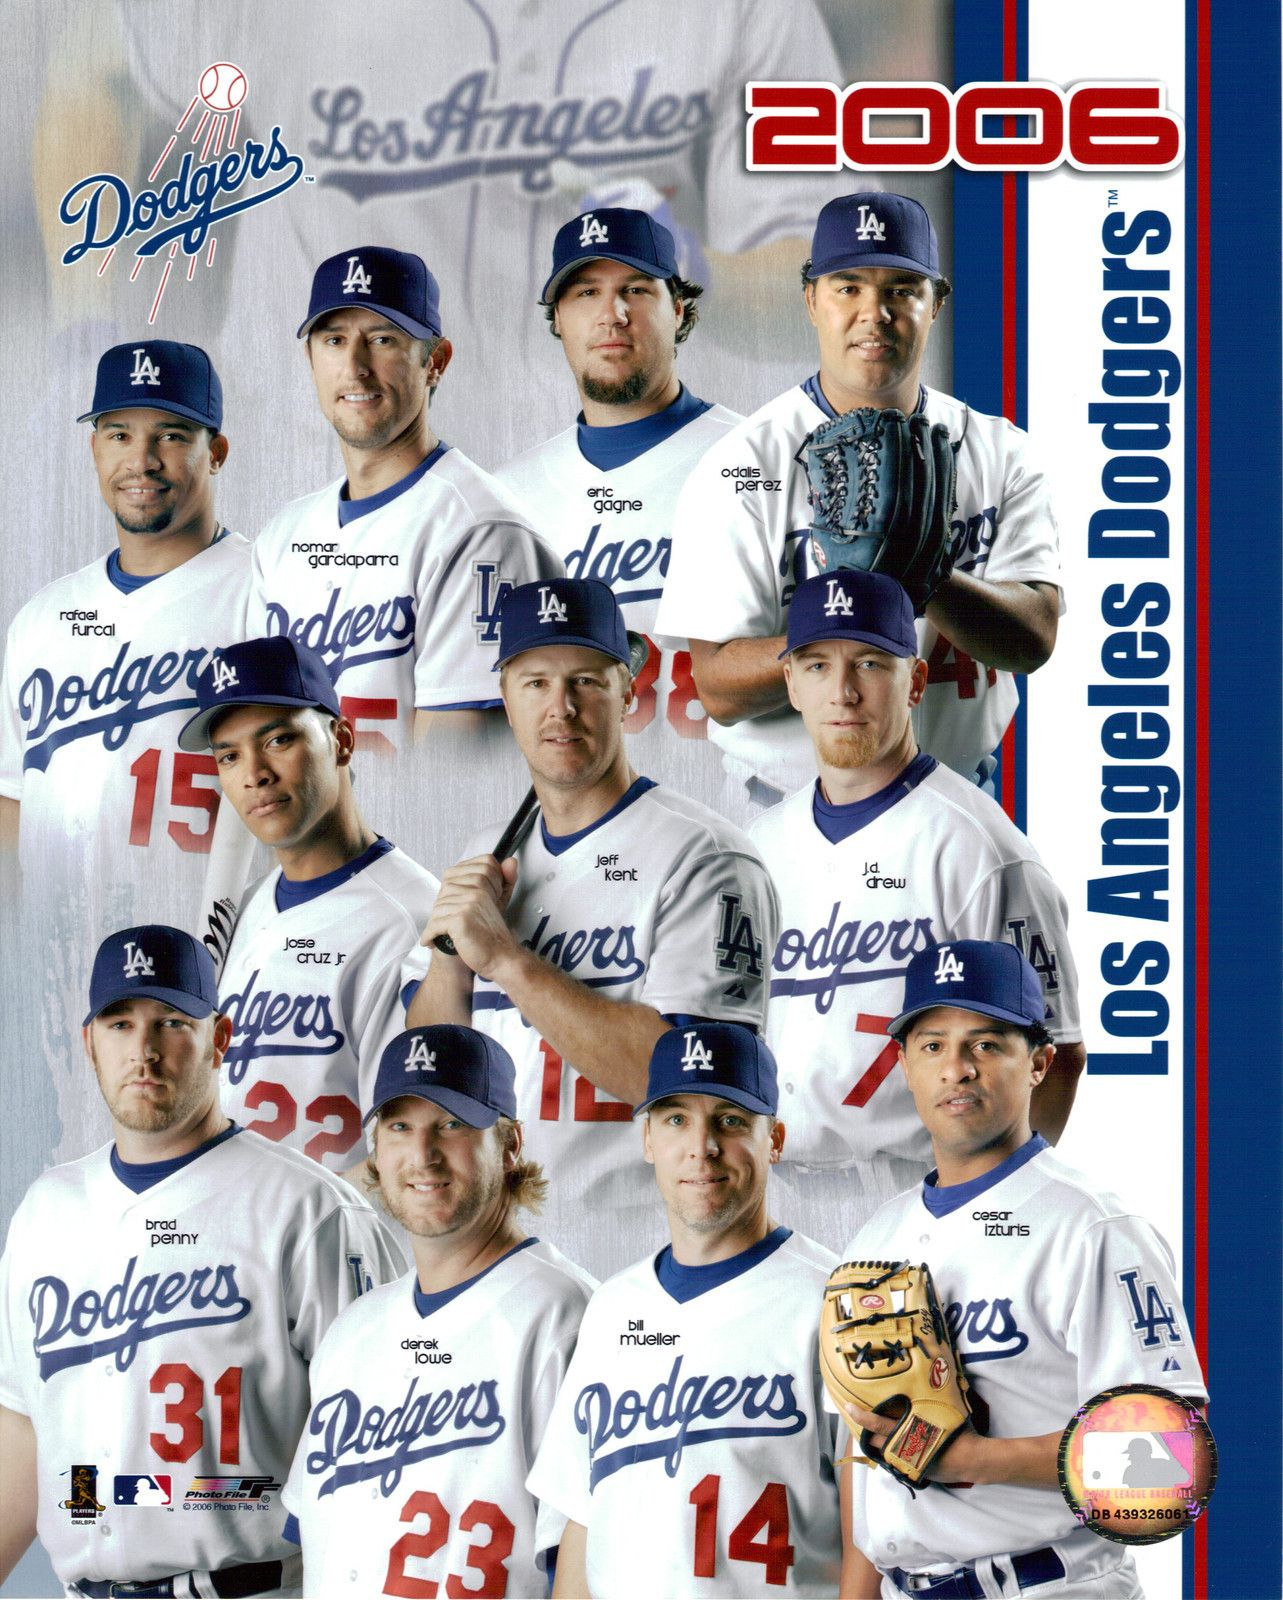 Los Angeles Dodgers 2006 Team Photo 8x10 Color Glossy Dodgers